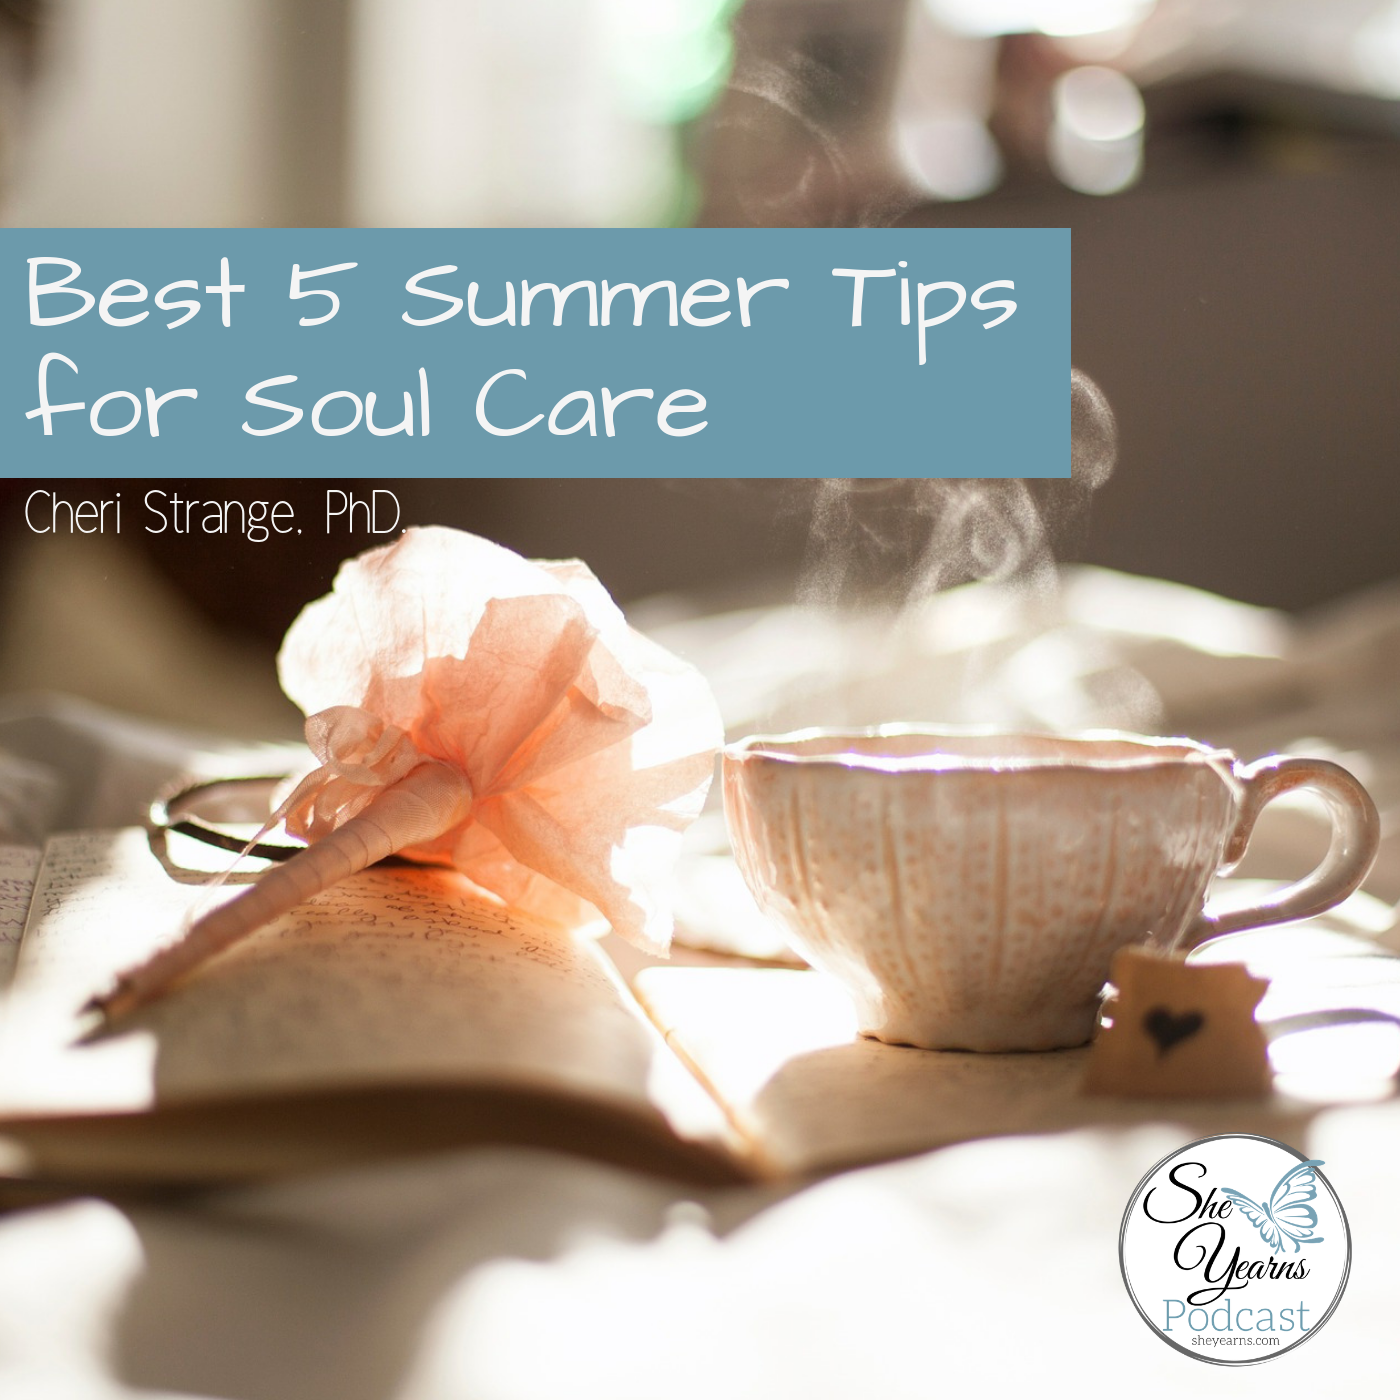 Best 5 Summer Tips for Soul Care